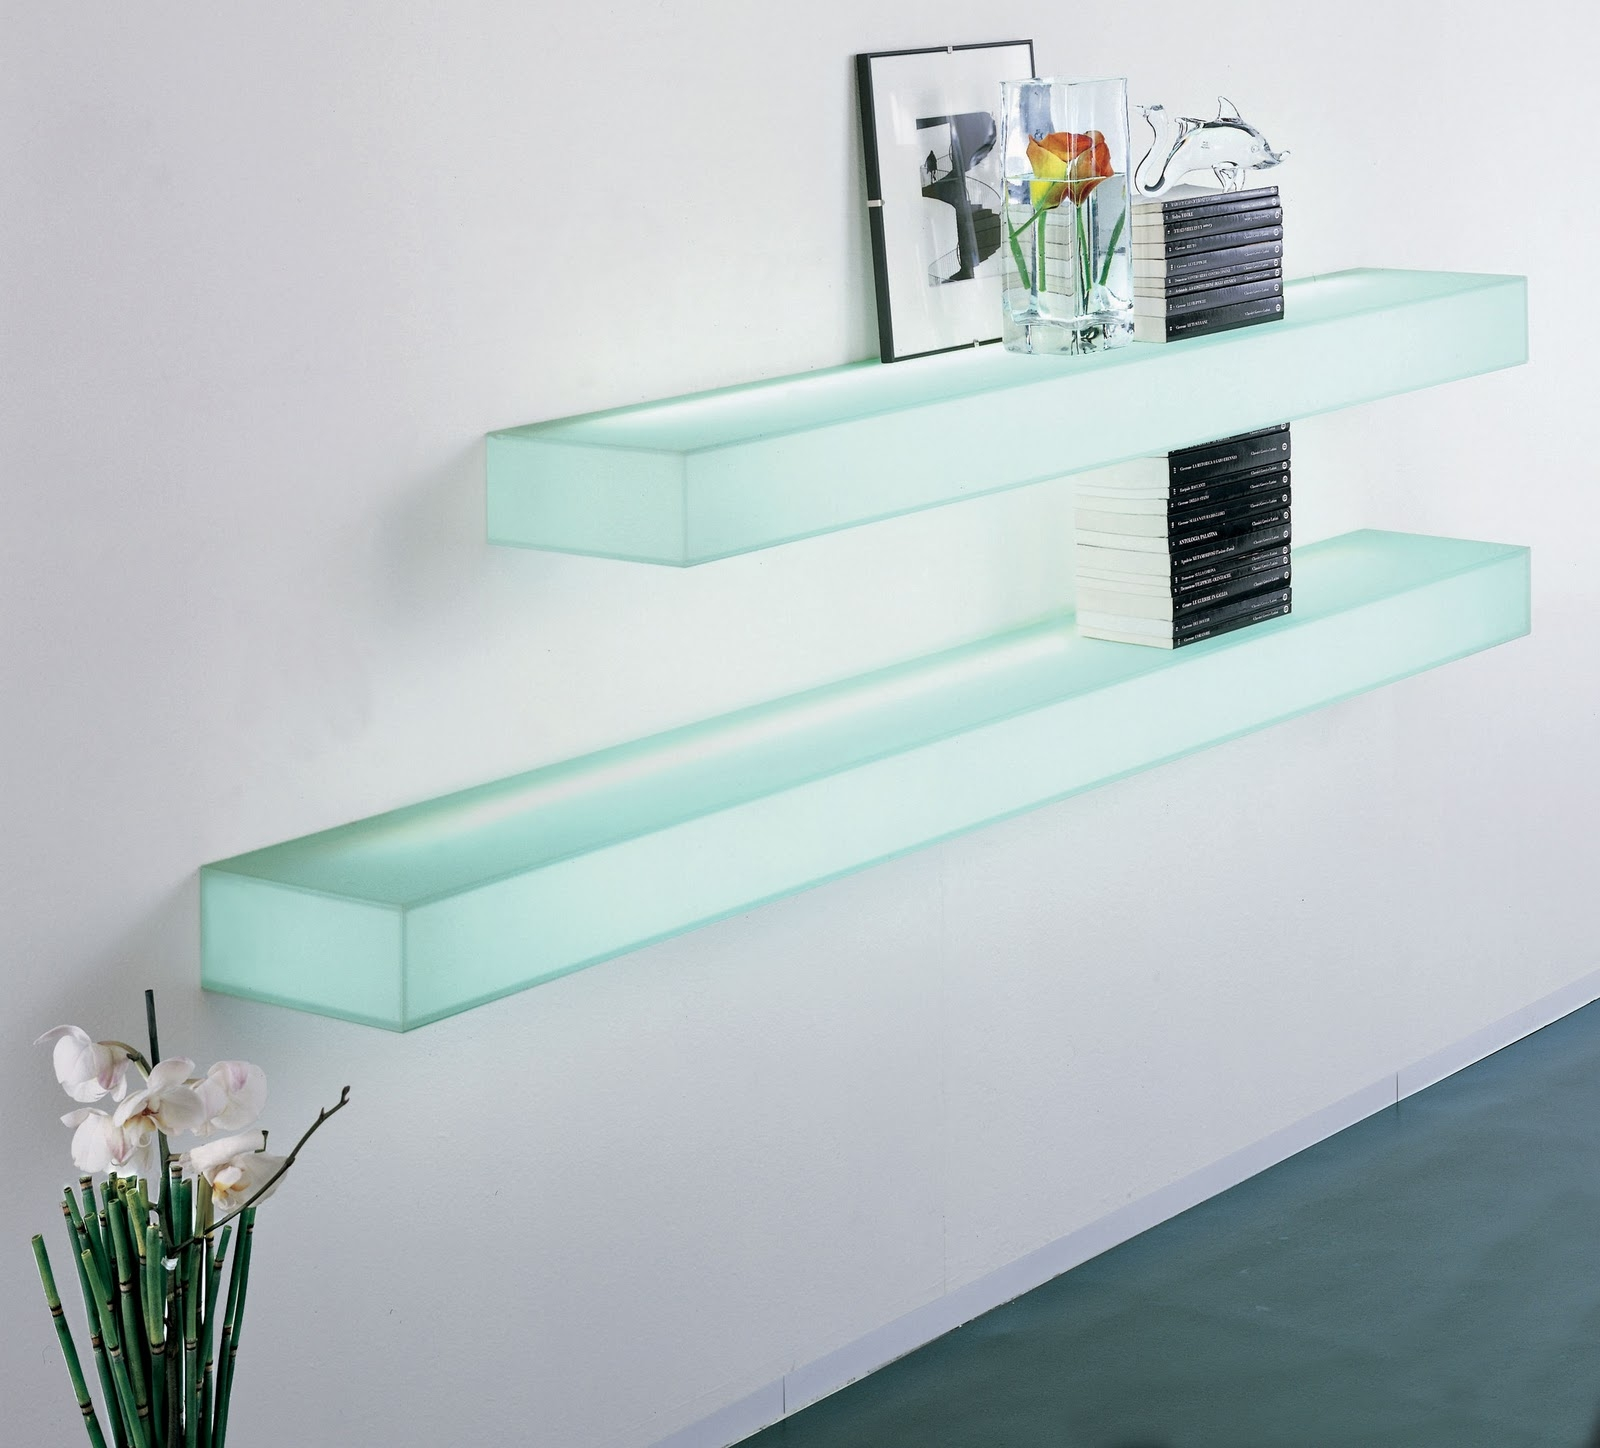 Furniture Awesome Illuminated Glass Bar Shelves Led Shelves W With Regard To Illuminated Glass Shelves (View 3 of 15)